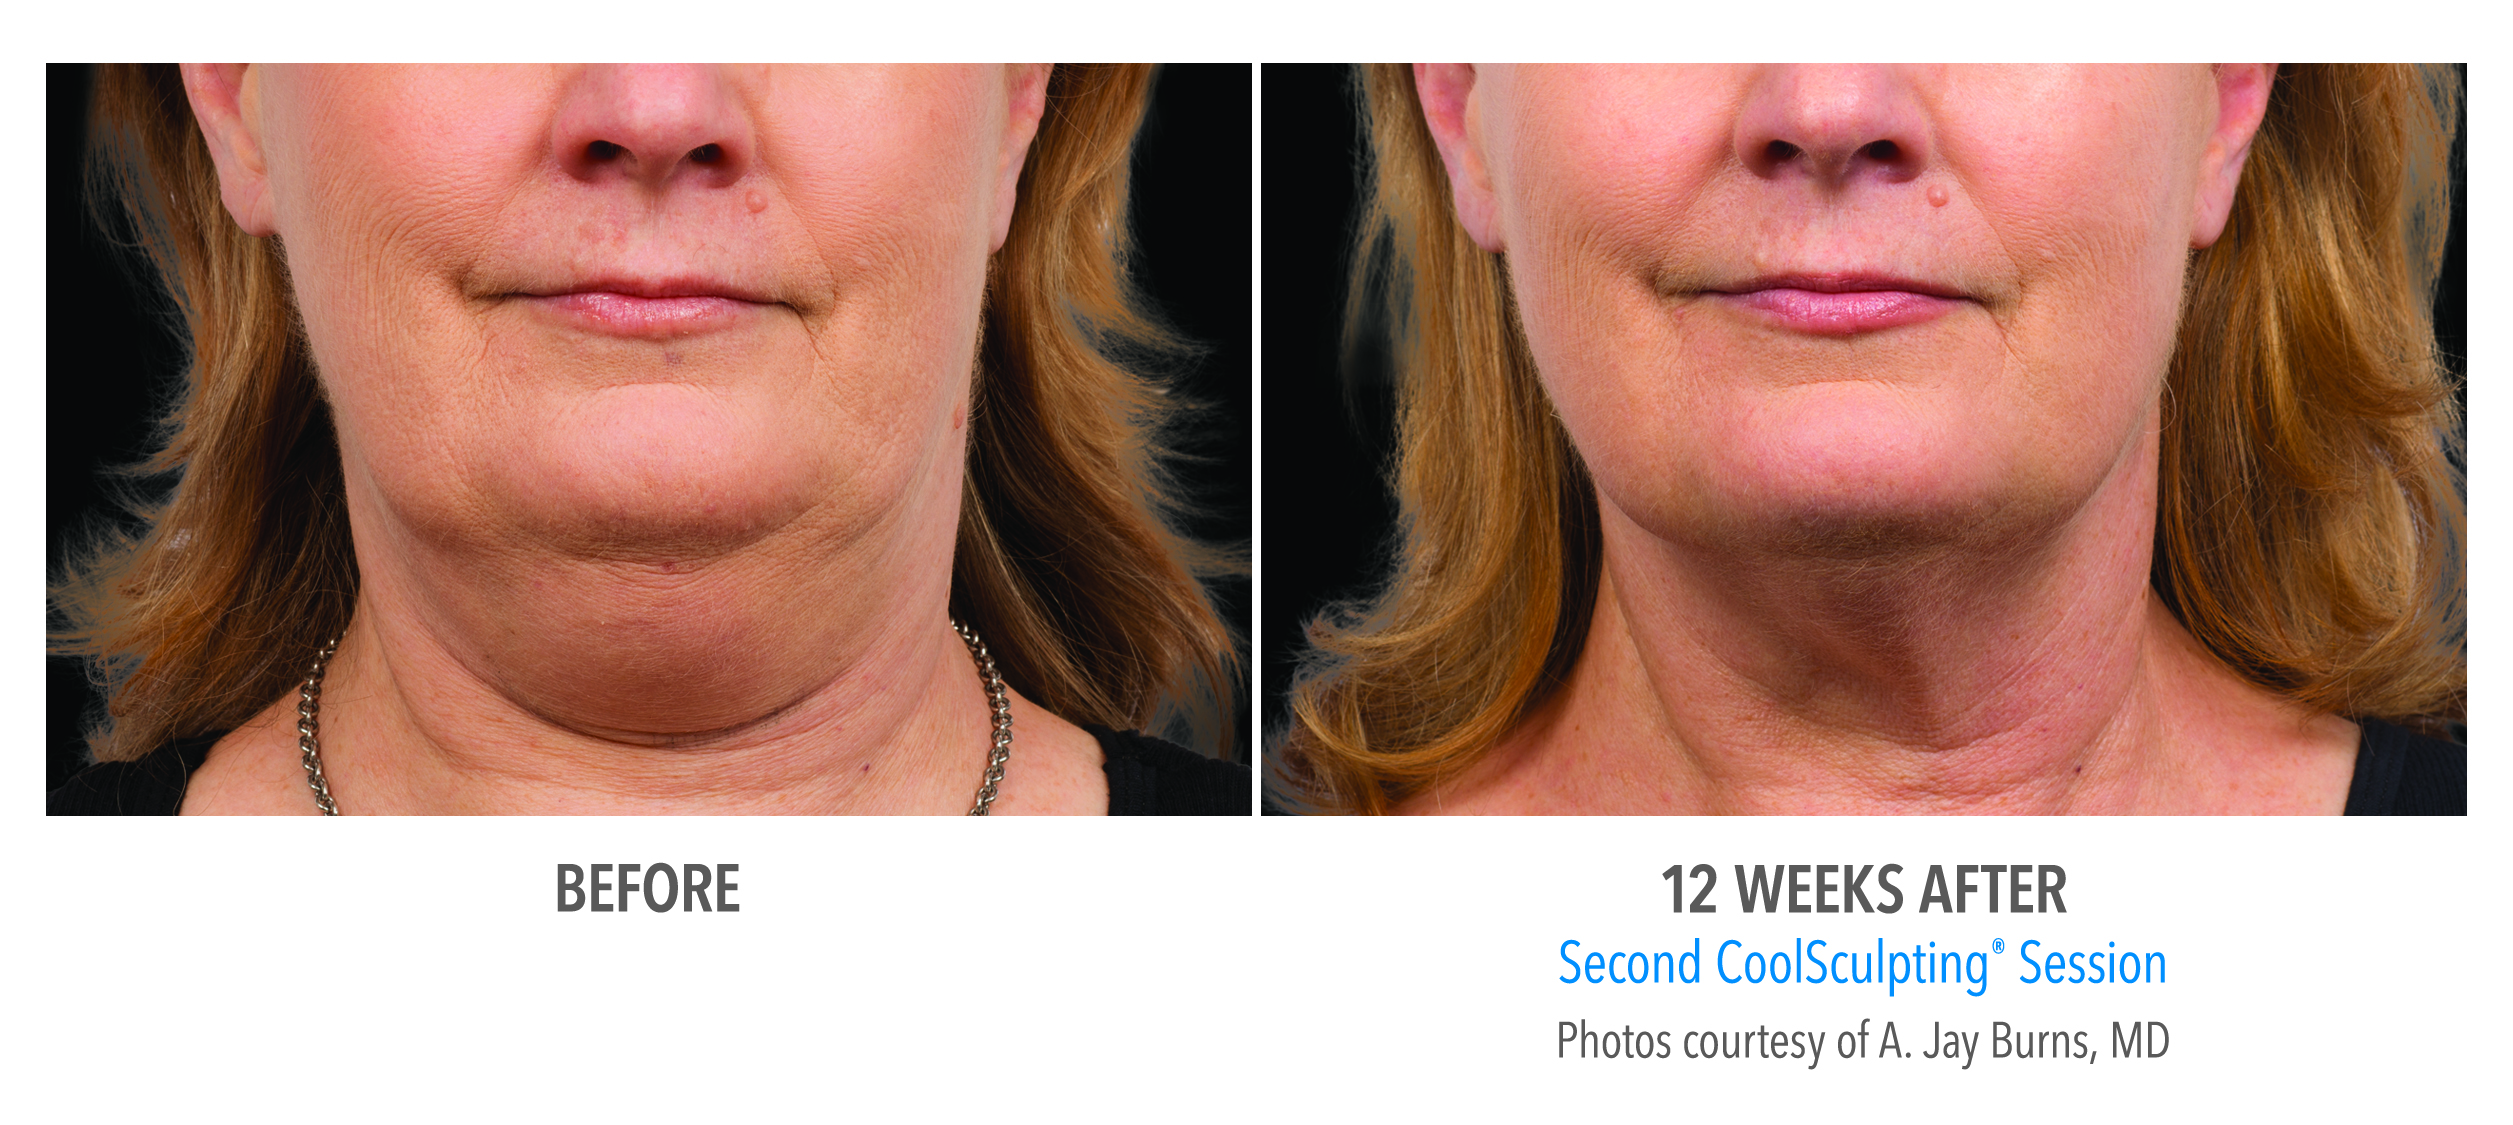 CoolSculpting double chin reduction before and after image